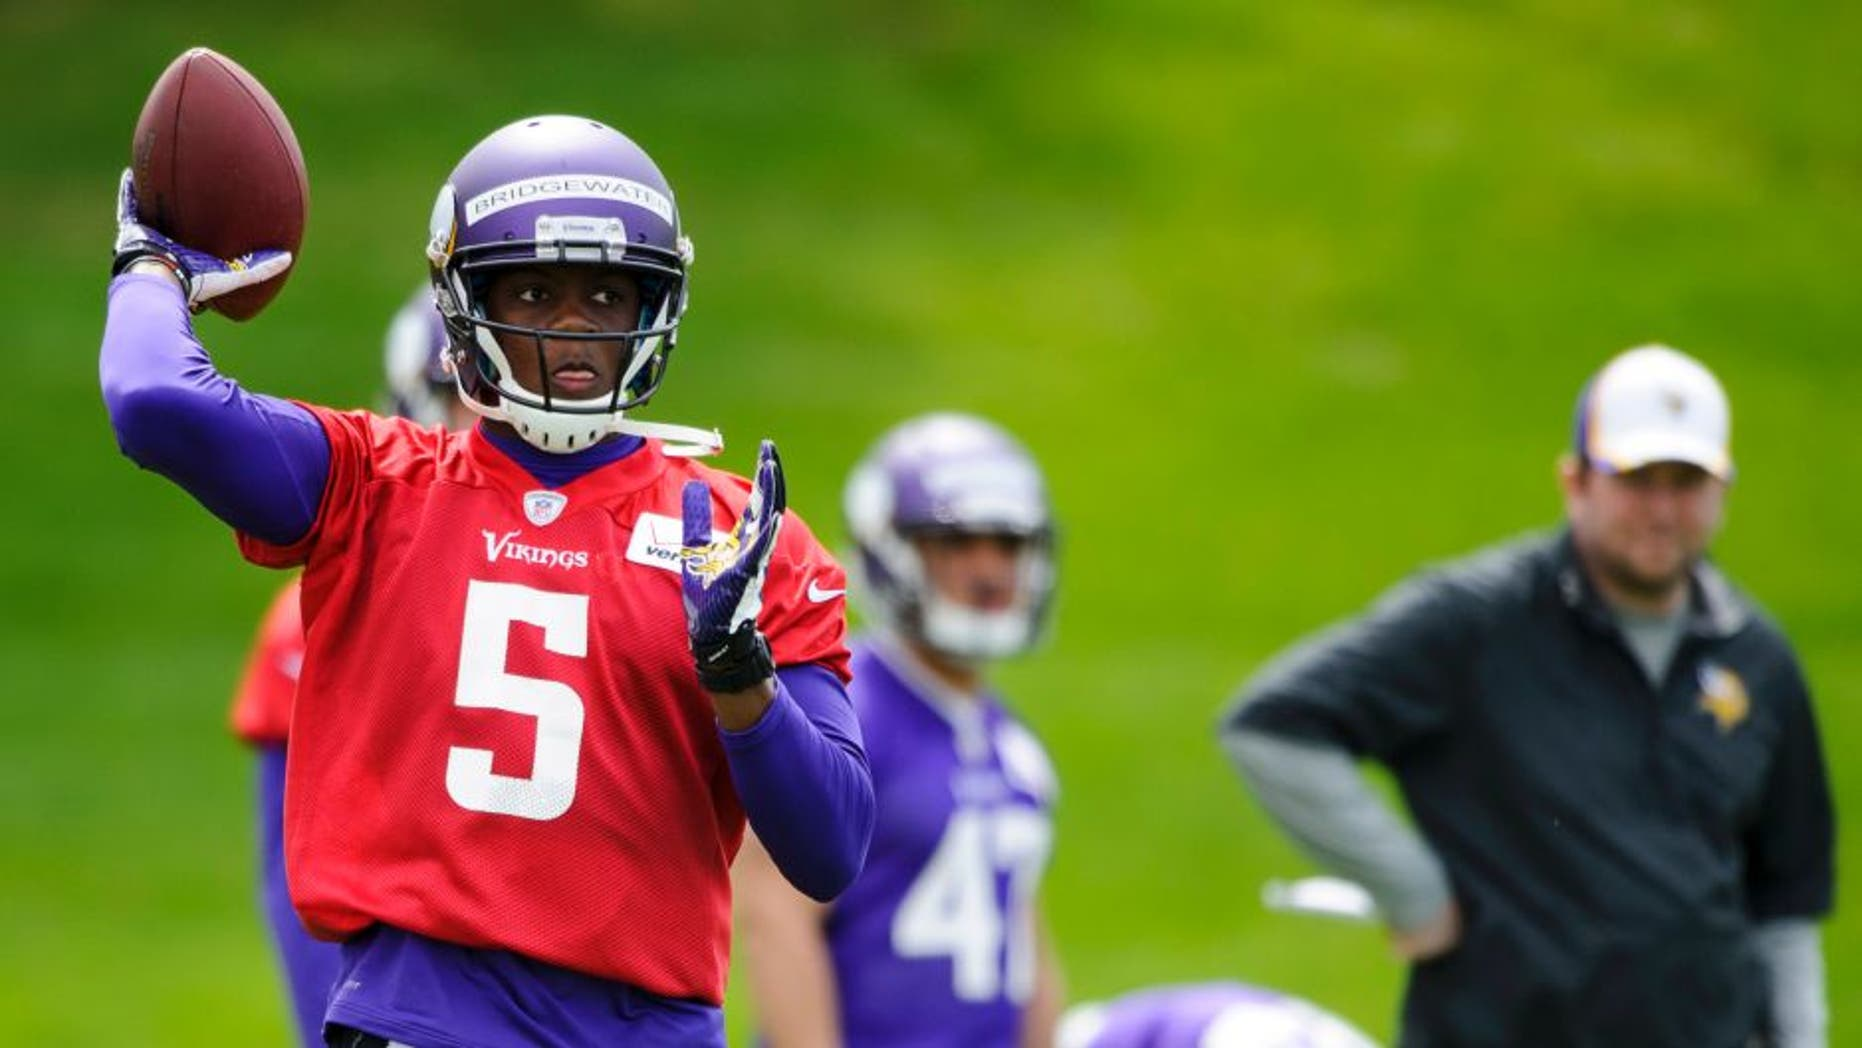 EDEN PRAIRIE, MN - MAY 16: Teddy Bridgewater #5 of the Minnesota Vikings runs a drill during rookie minicamp on May 16, 2014 at Winter Park in Eden Prairie, Minnesota. (Photo by Hannah Foslien/Getty Images)